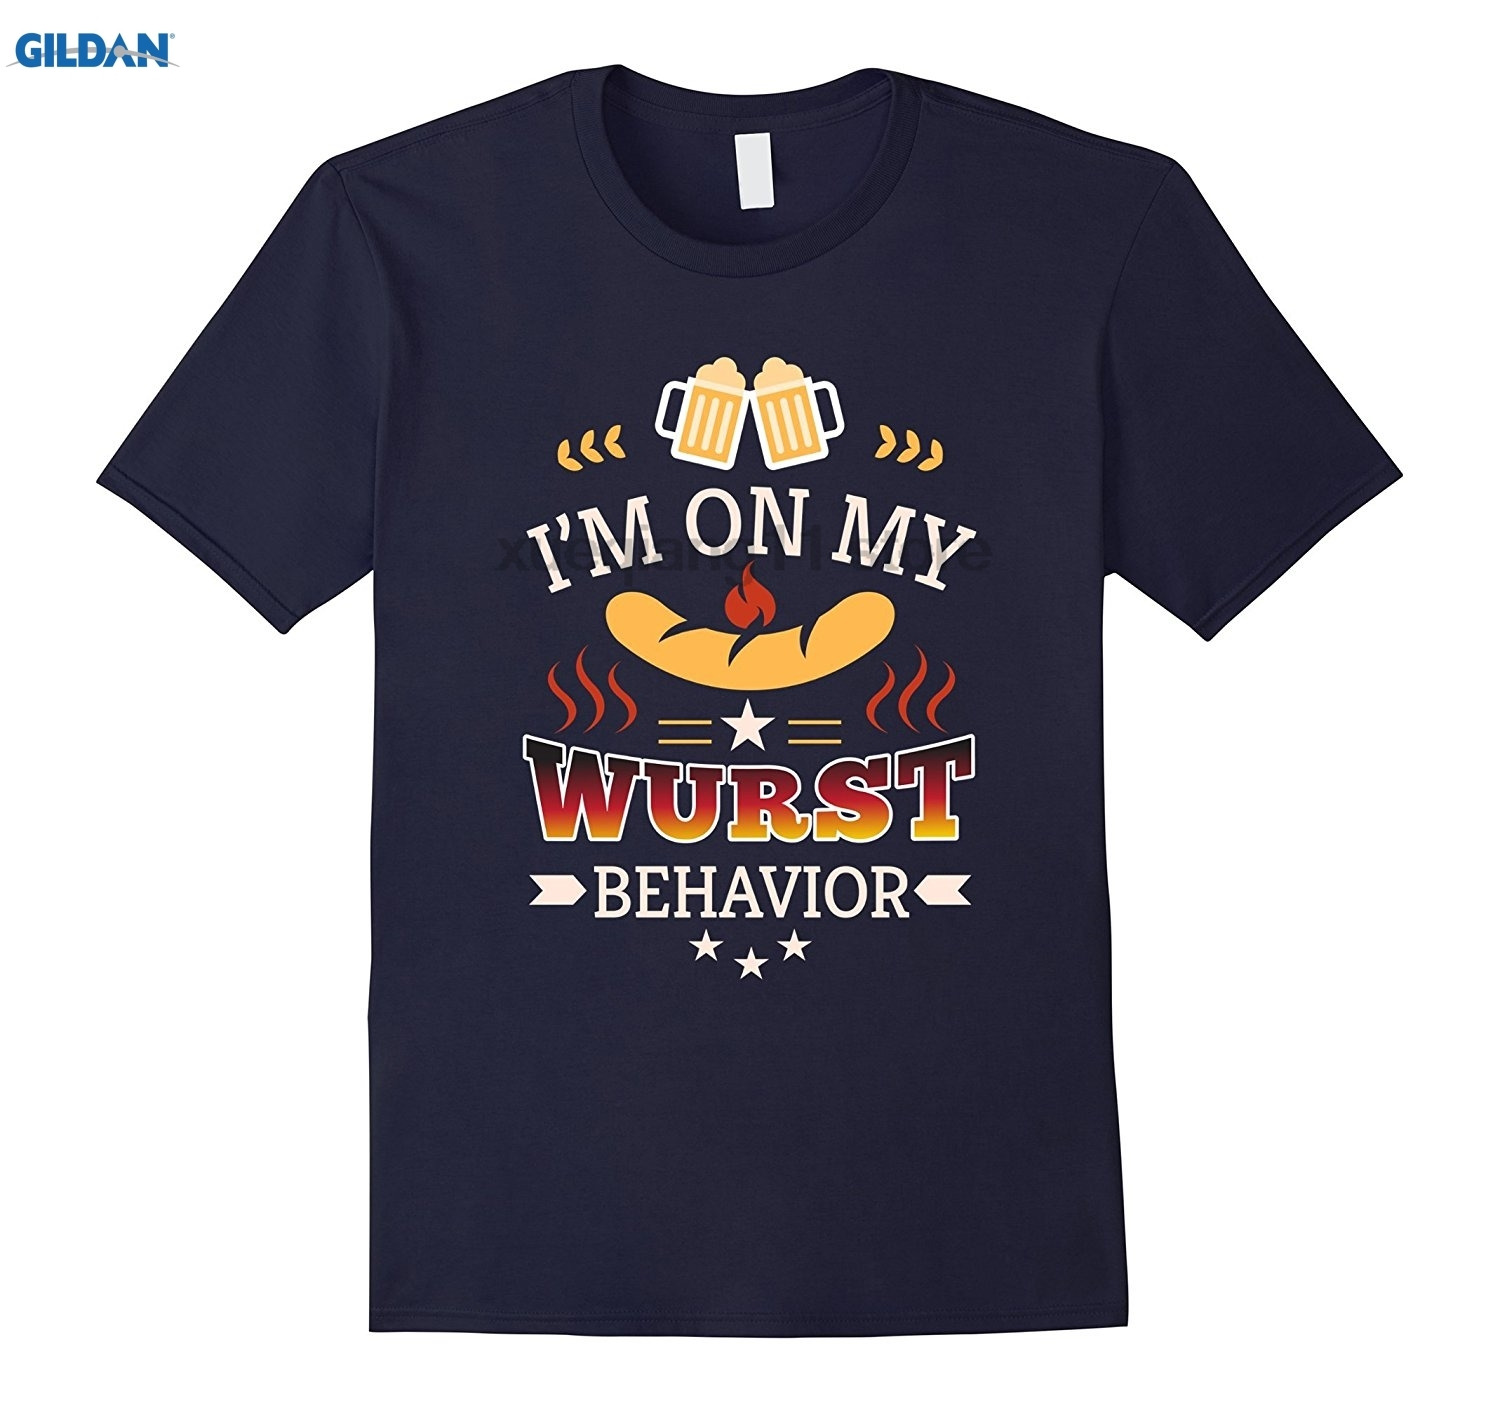 GILDAN IM ON MY WURST BEHAVIOR german Octoberfest beer T-Shirt